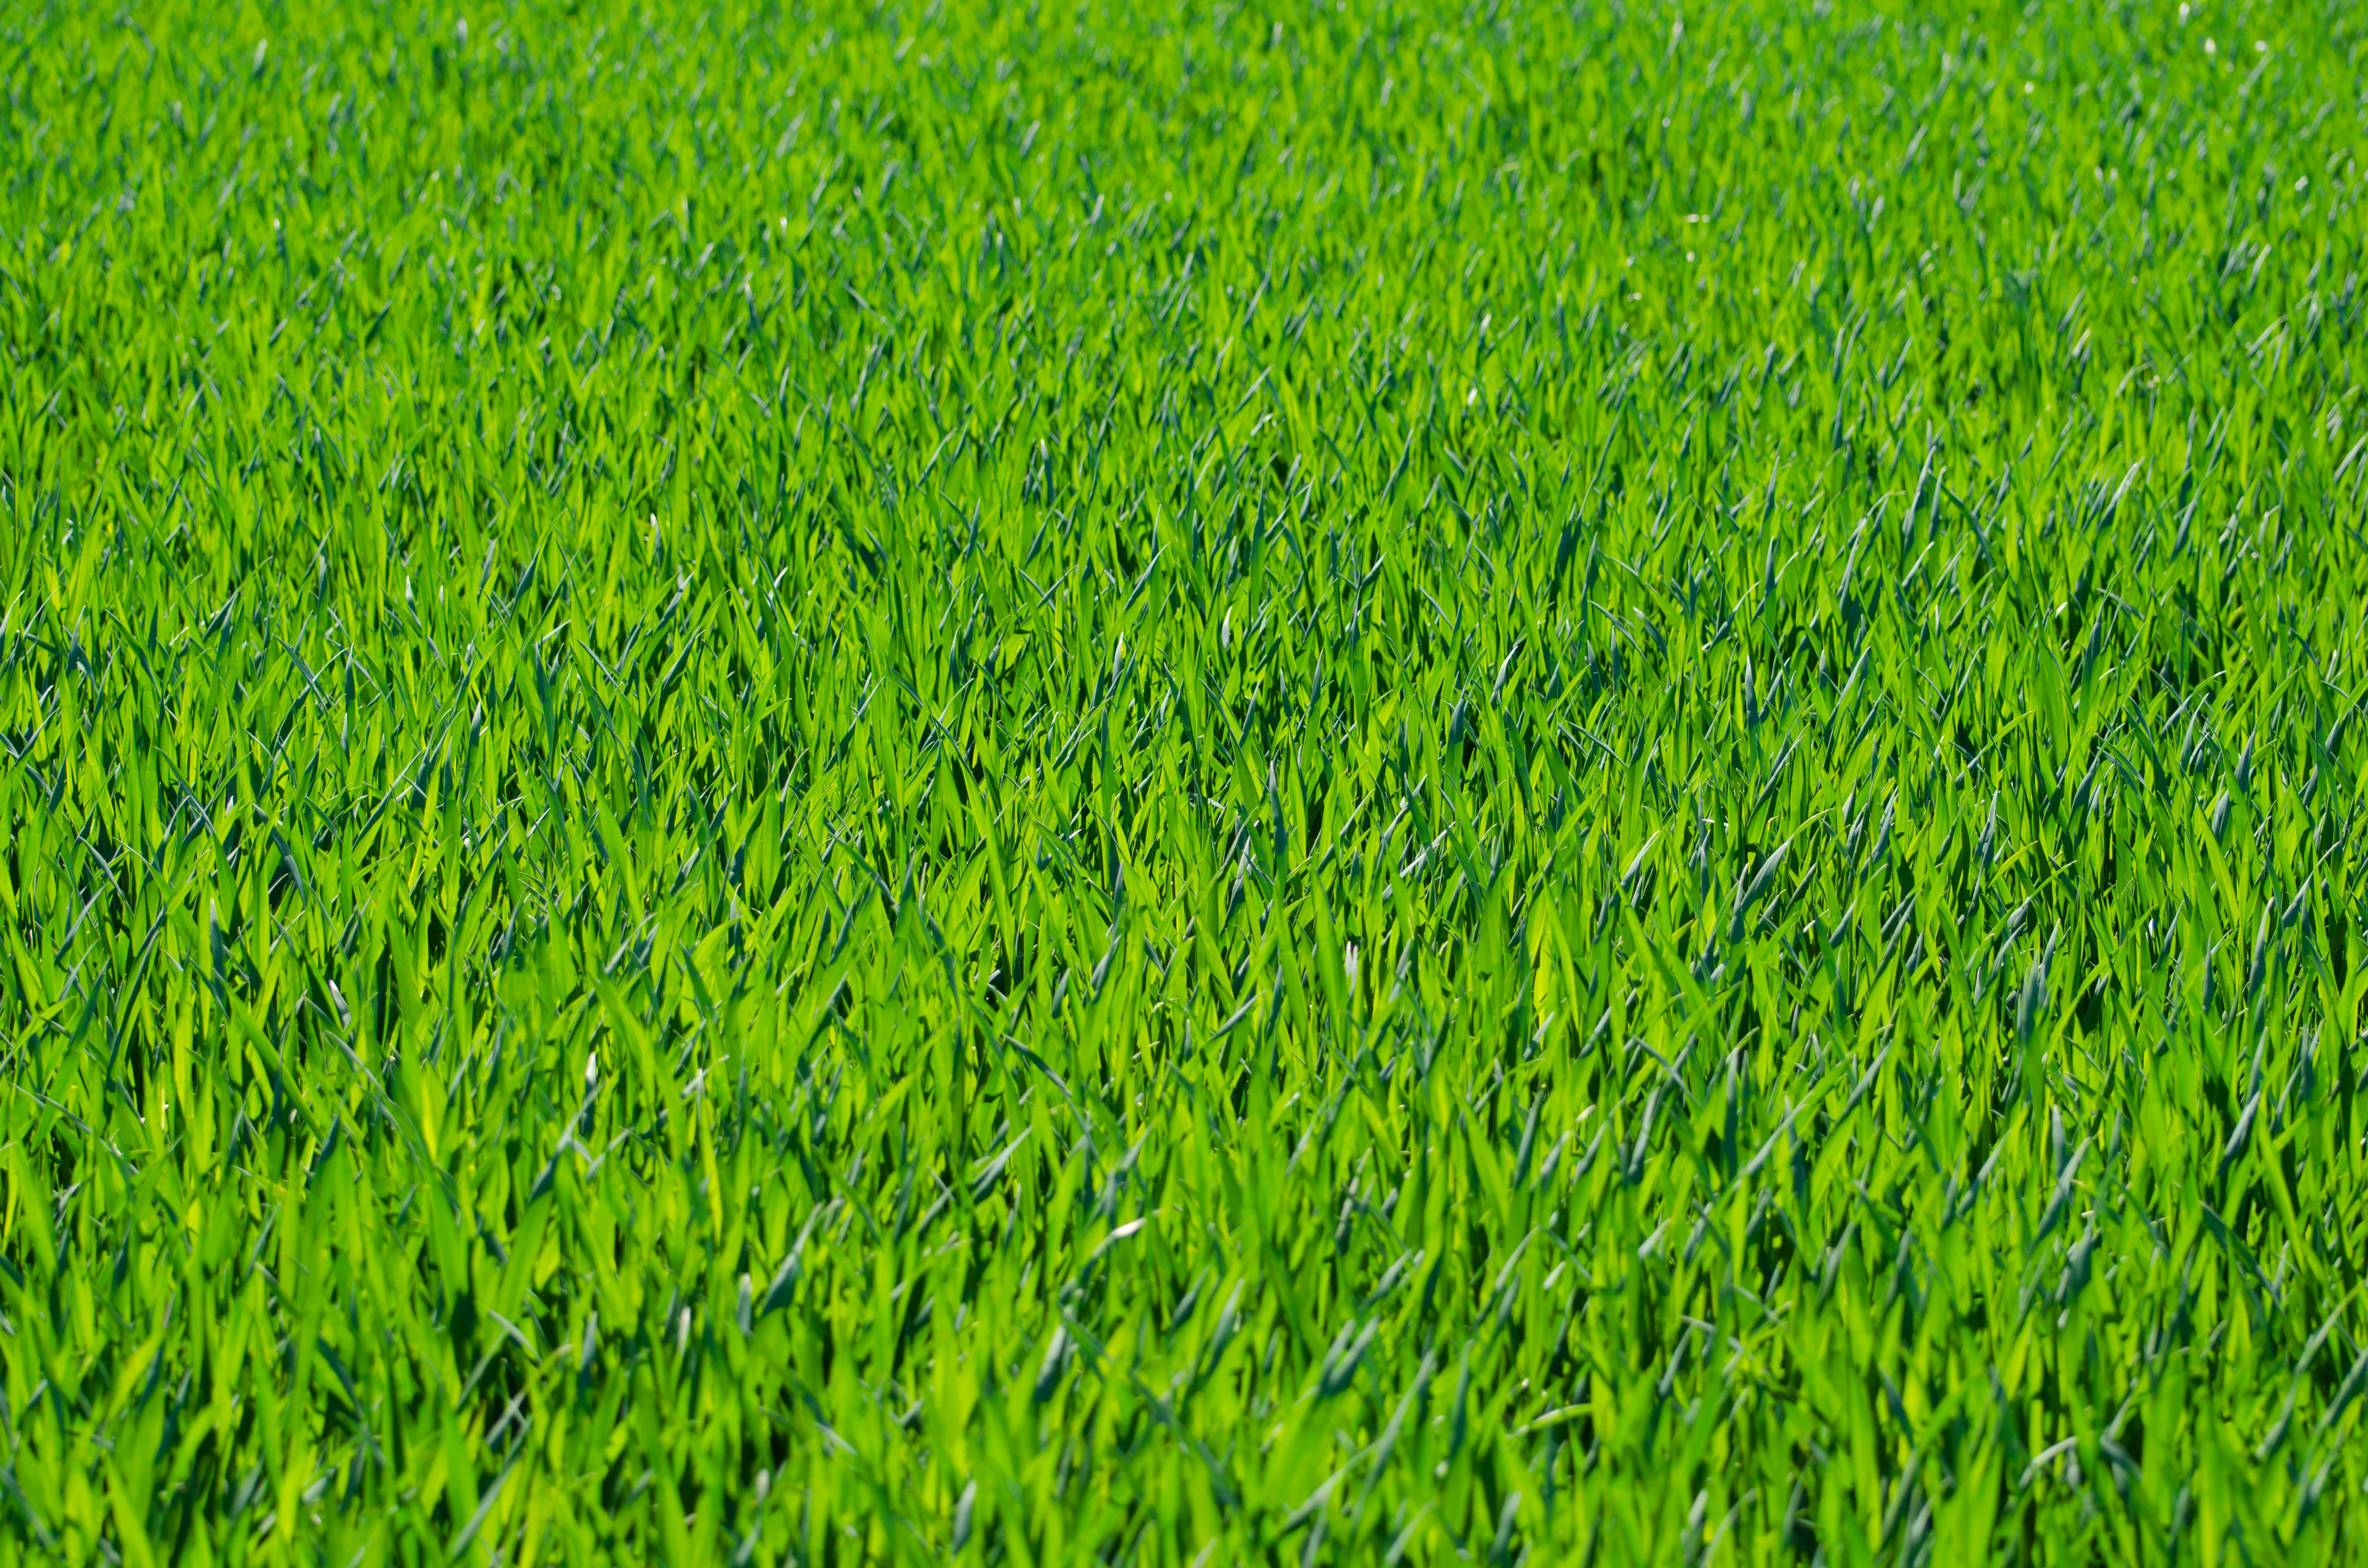 Green Grass Background Seven  Grass Textures Or Lawn Background